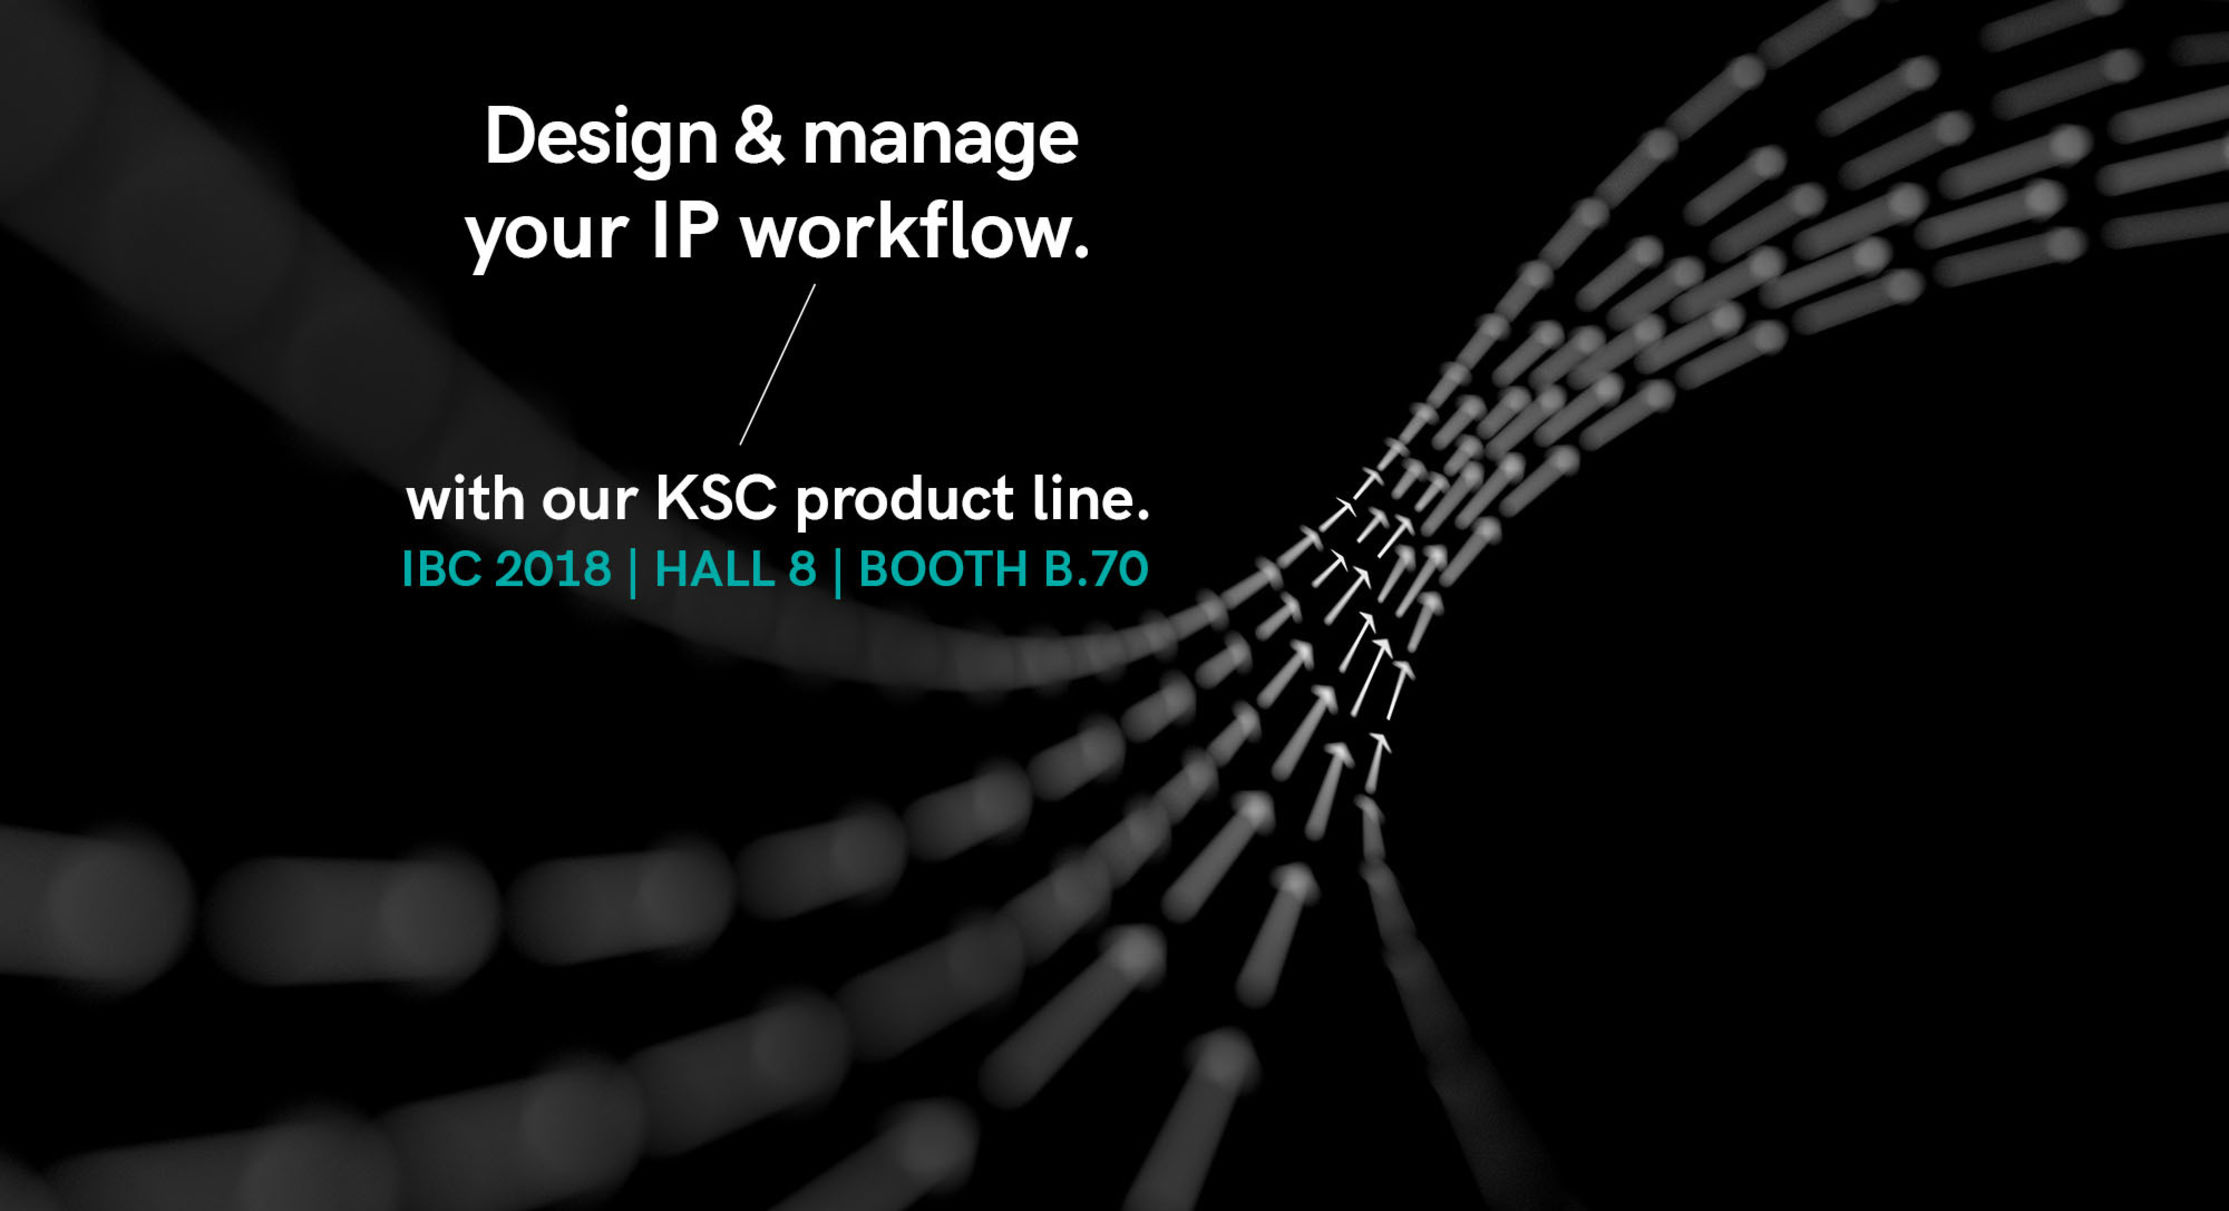 KSC product line at IBC 2018